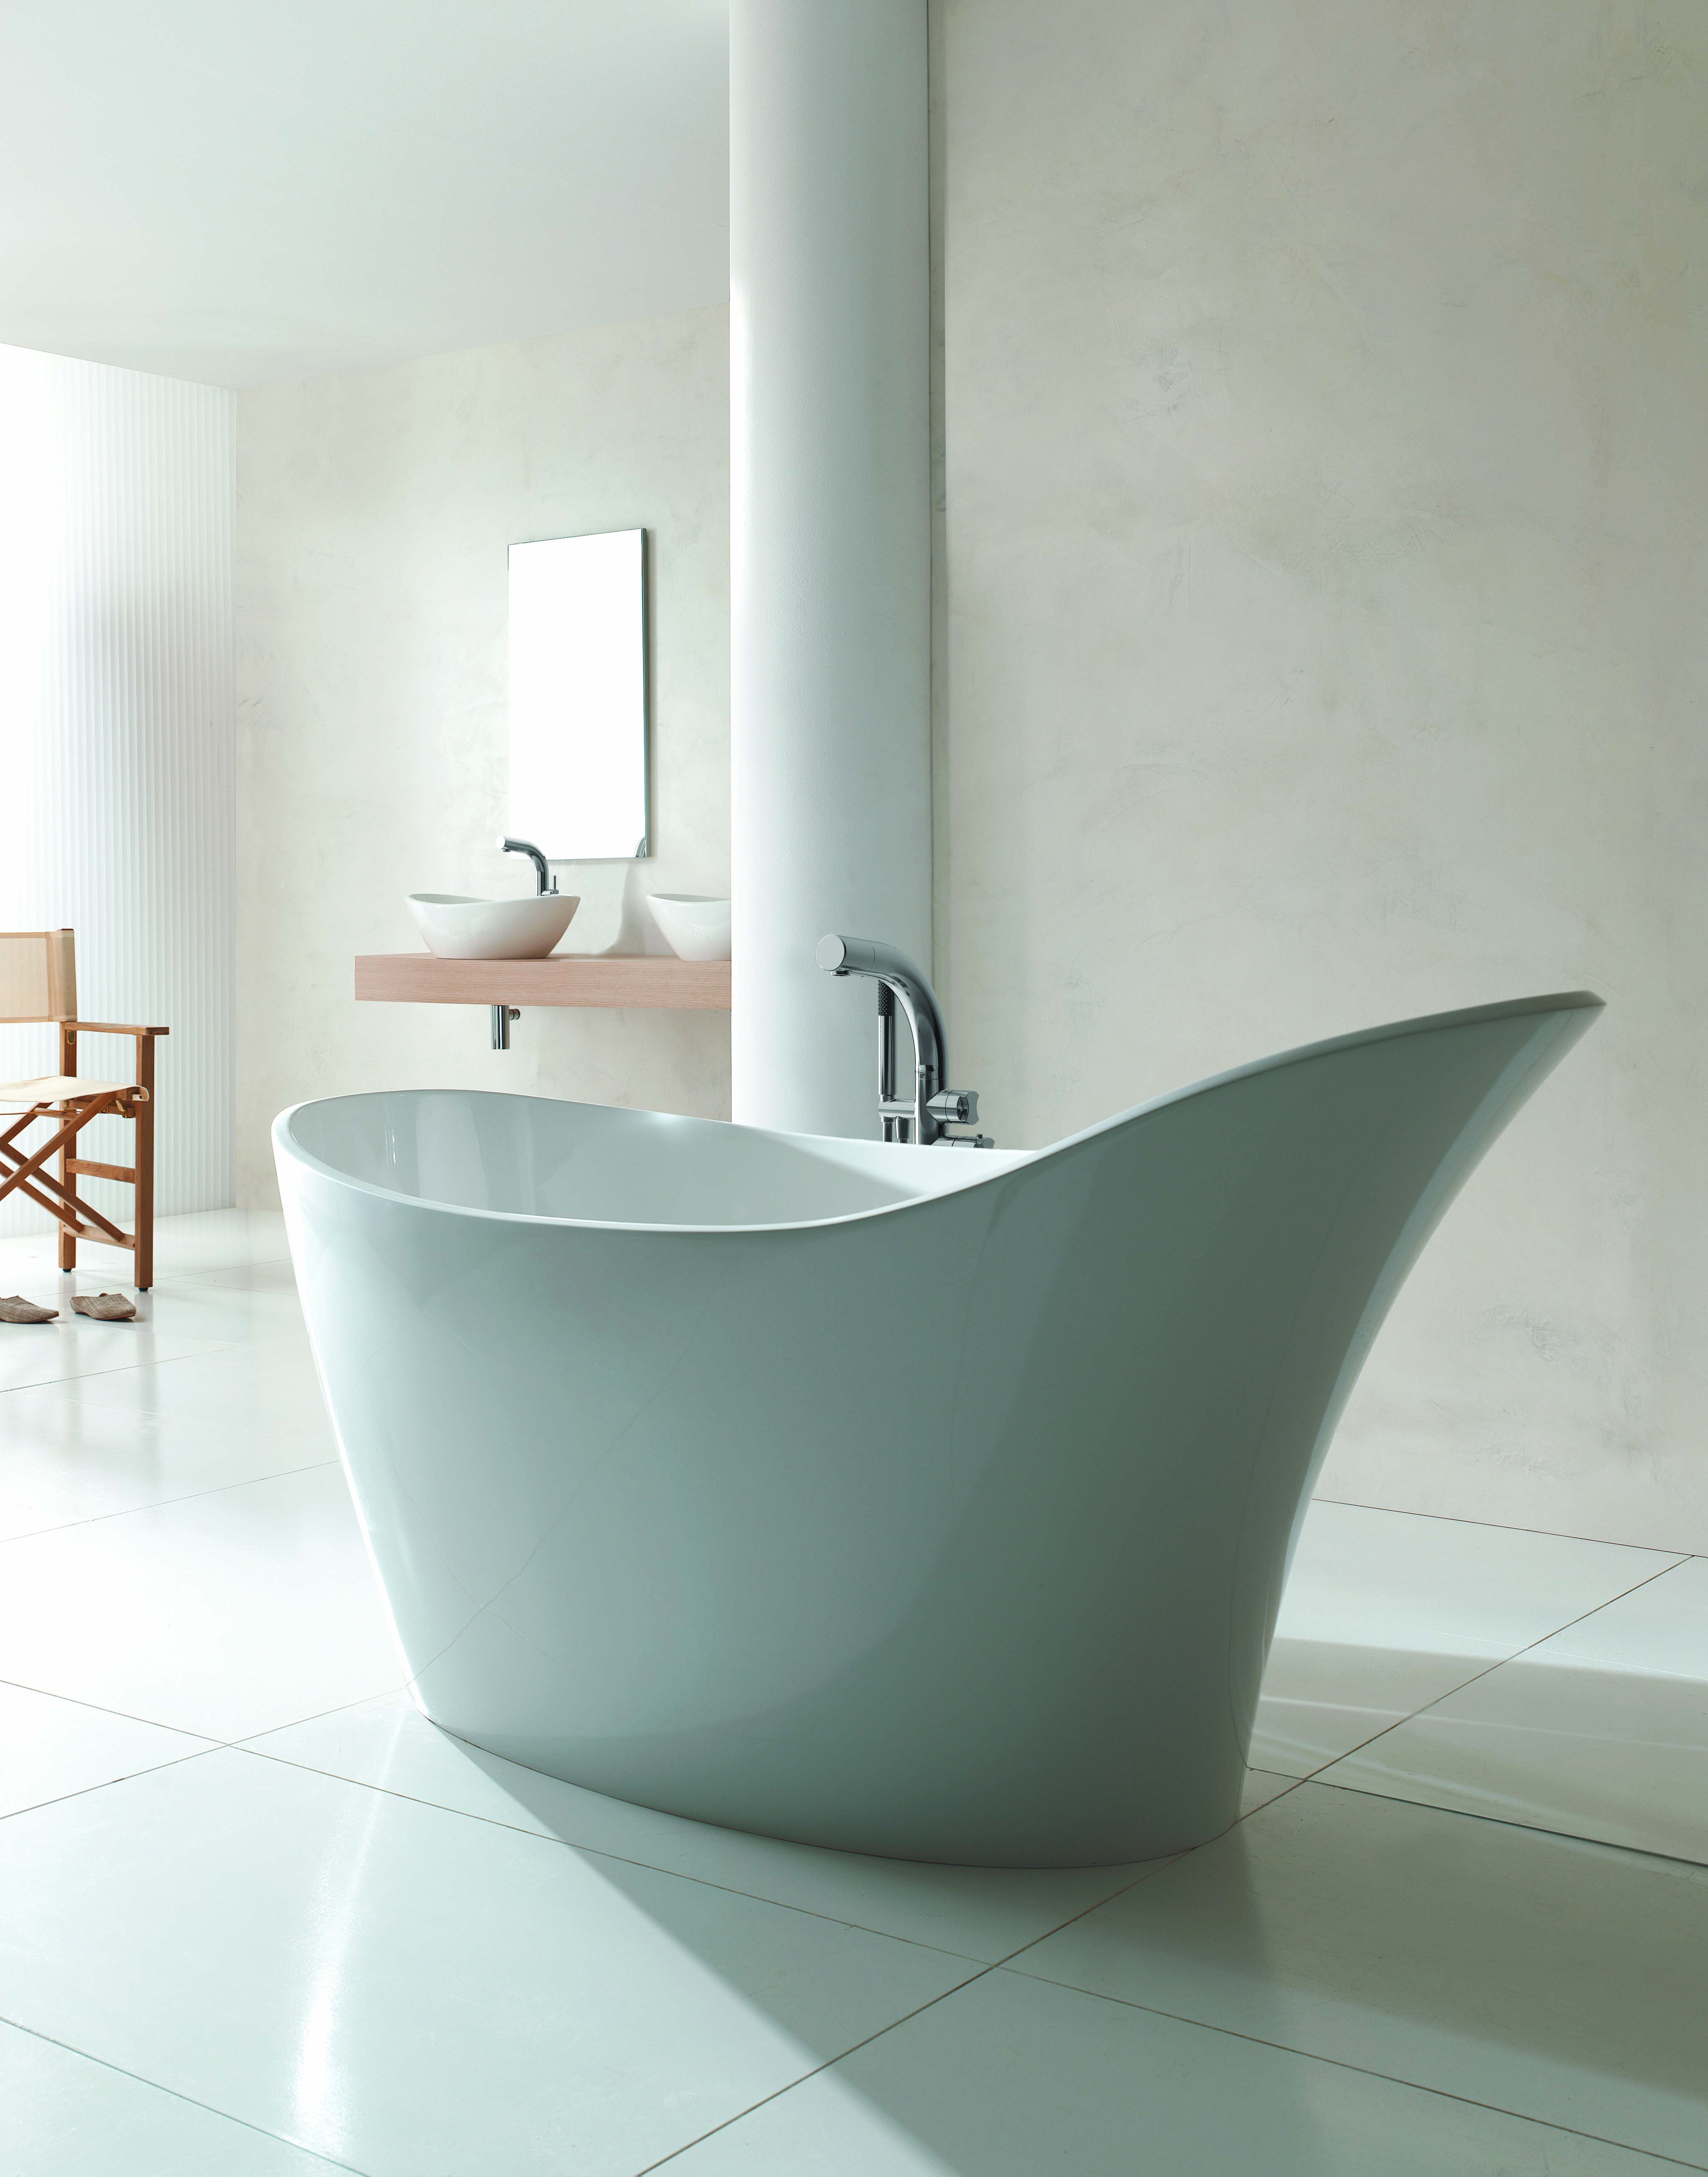 Duravit archives pittville bathrooms and for Bathroom trends 2016 uk